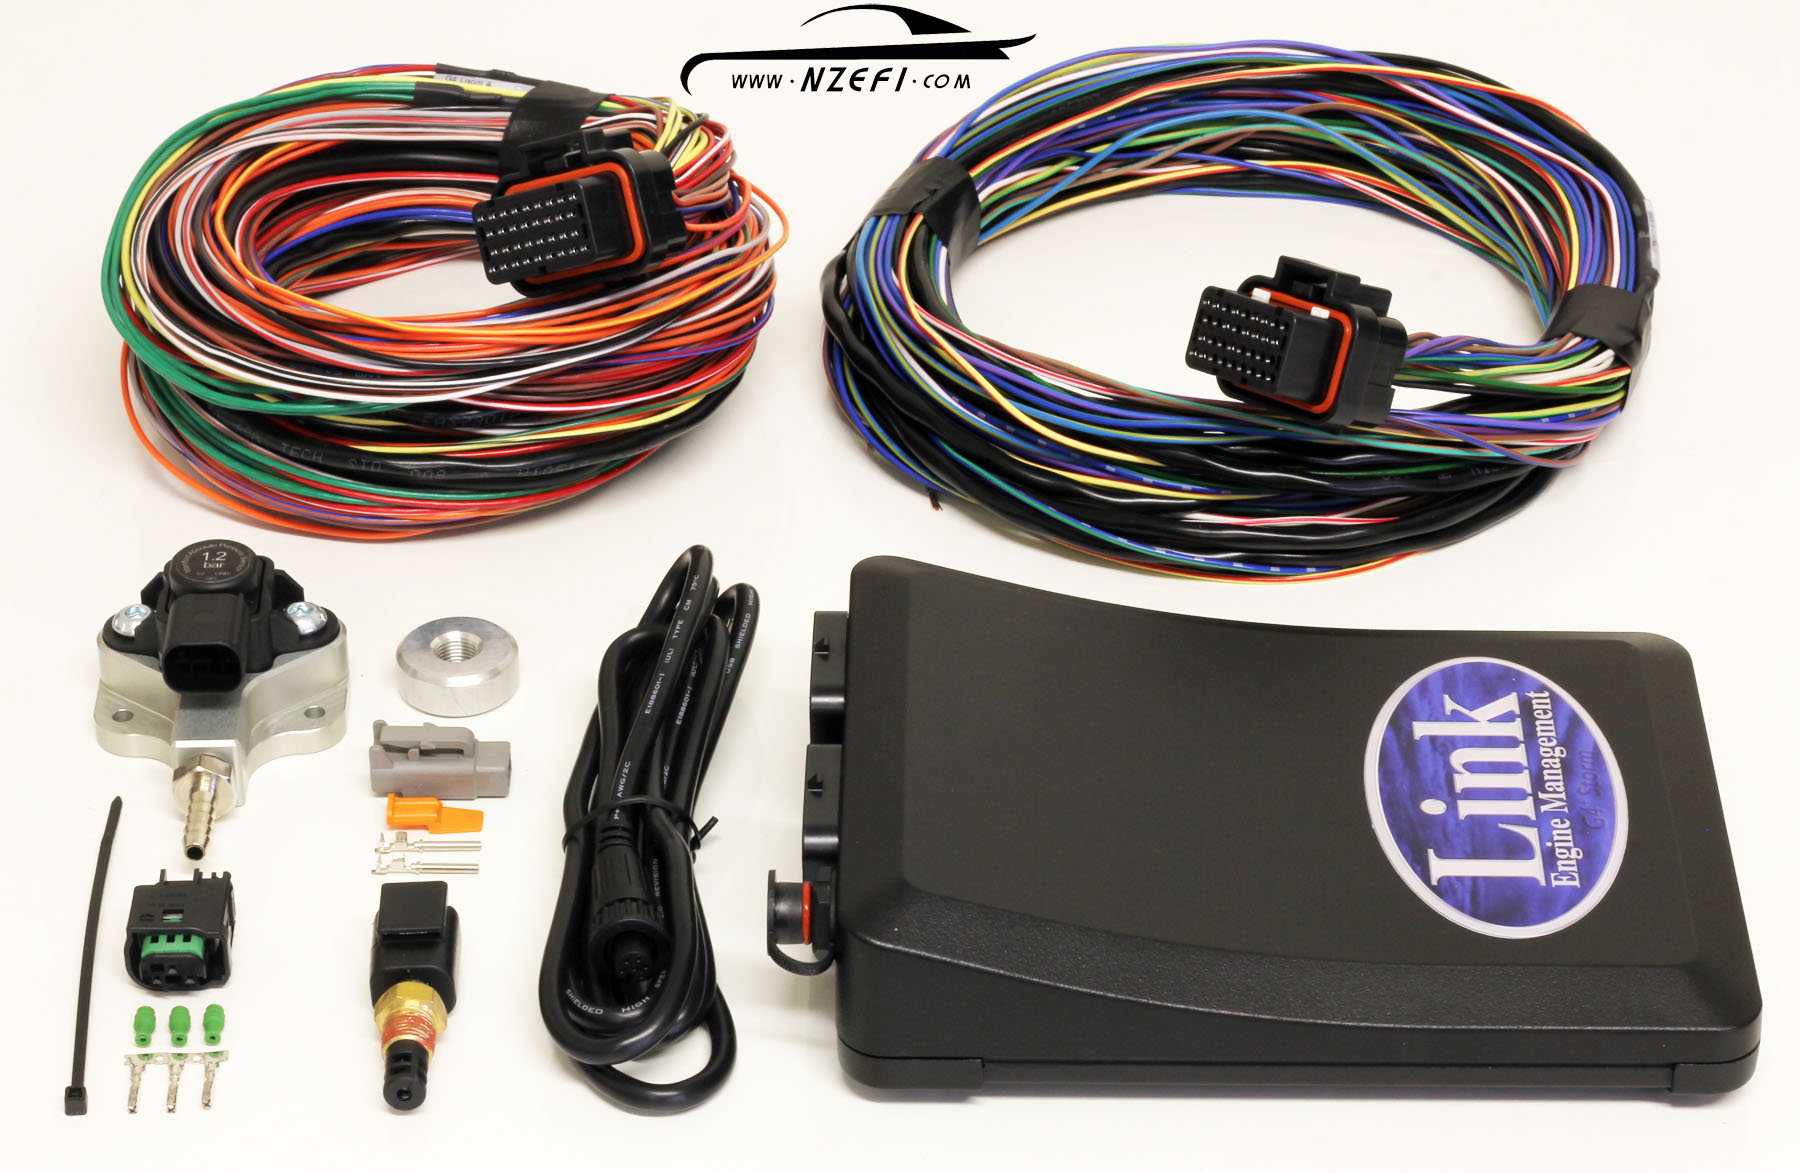 Nzefi Performance Tuning And Development Total Dyno Universal Motorcycle Wiring Harness Kit Link G4 Storm Black Essentials Package